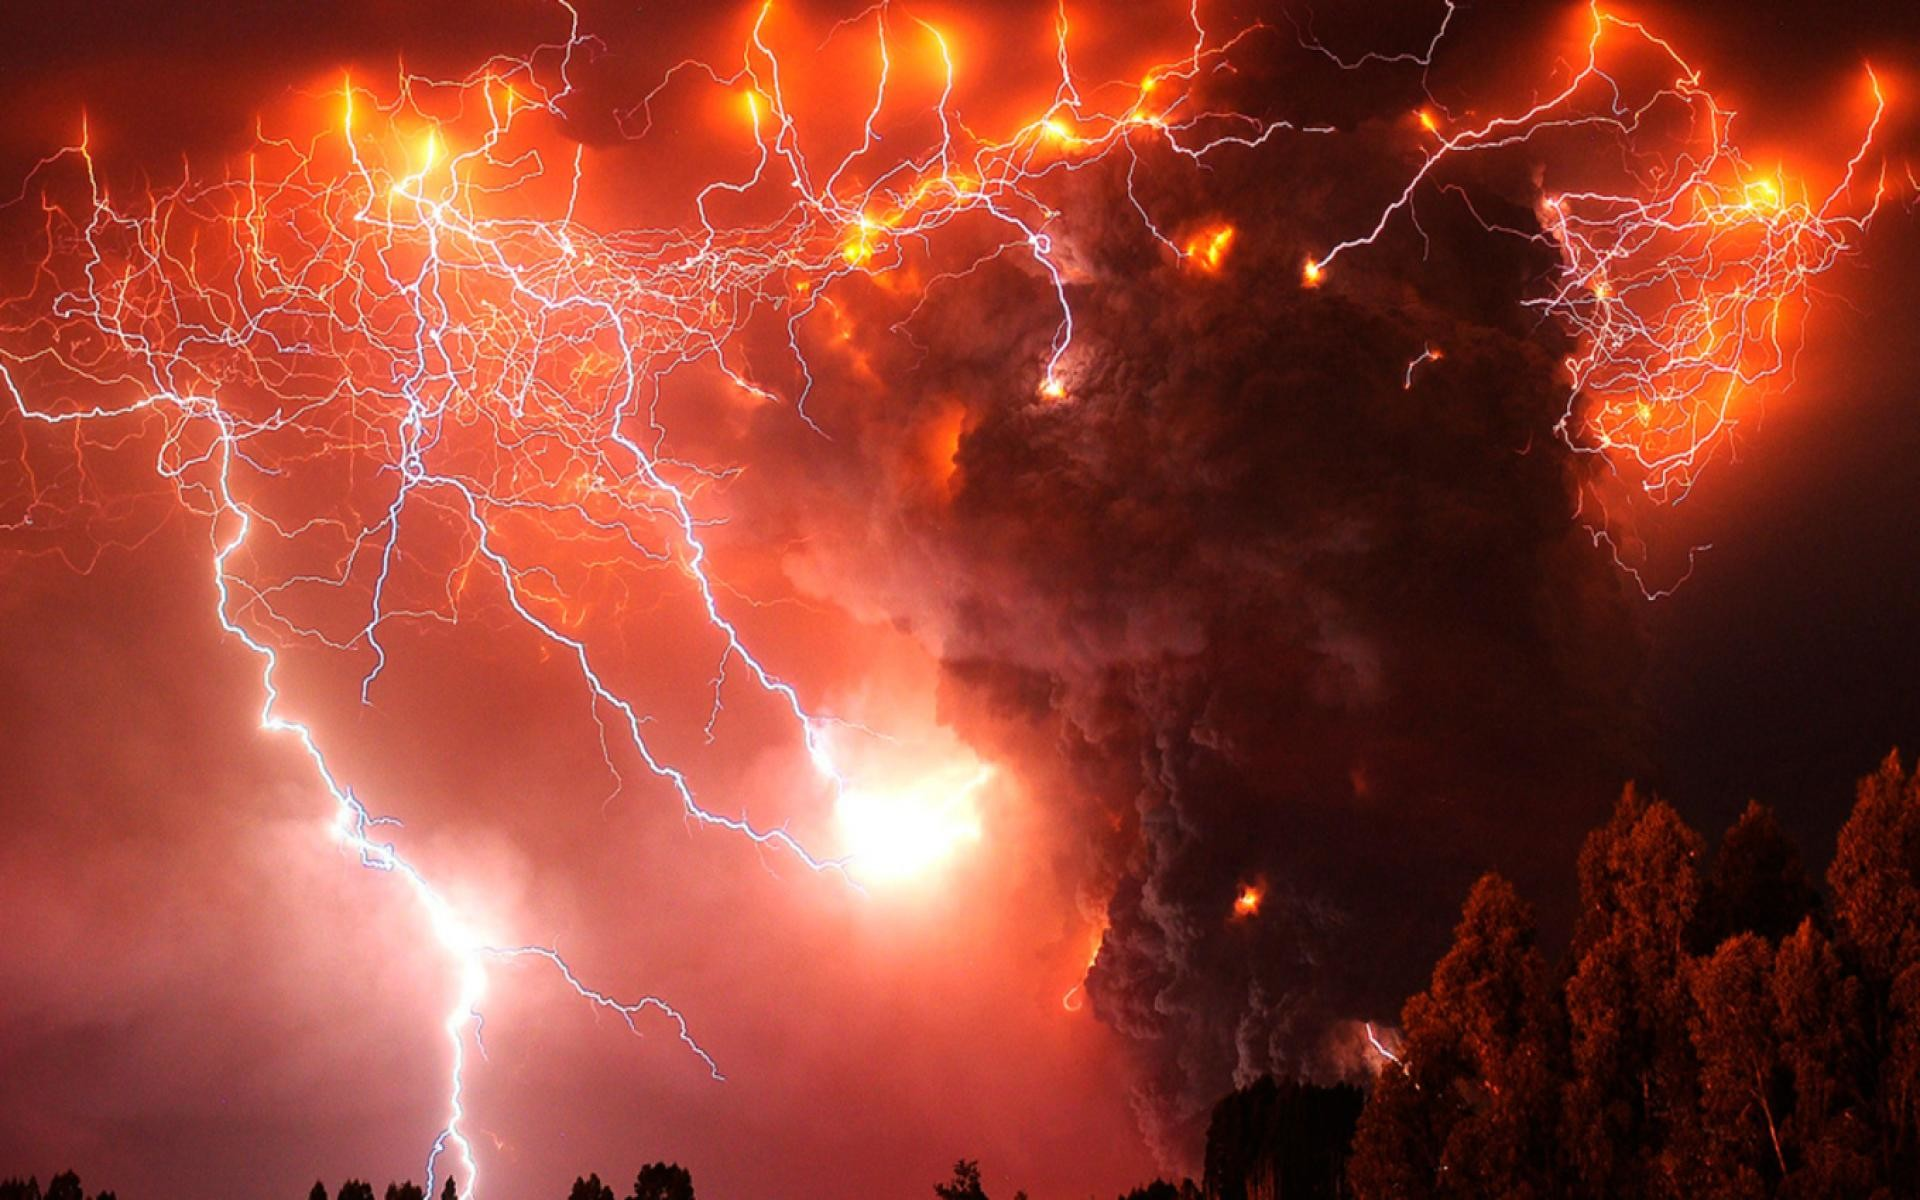 Res: 1920x1200, Volcanic lighting comes from volcanic explosions causing an electrical  storm. A dirty thunderstorm, also known as Volcanic lightning, ...